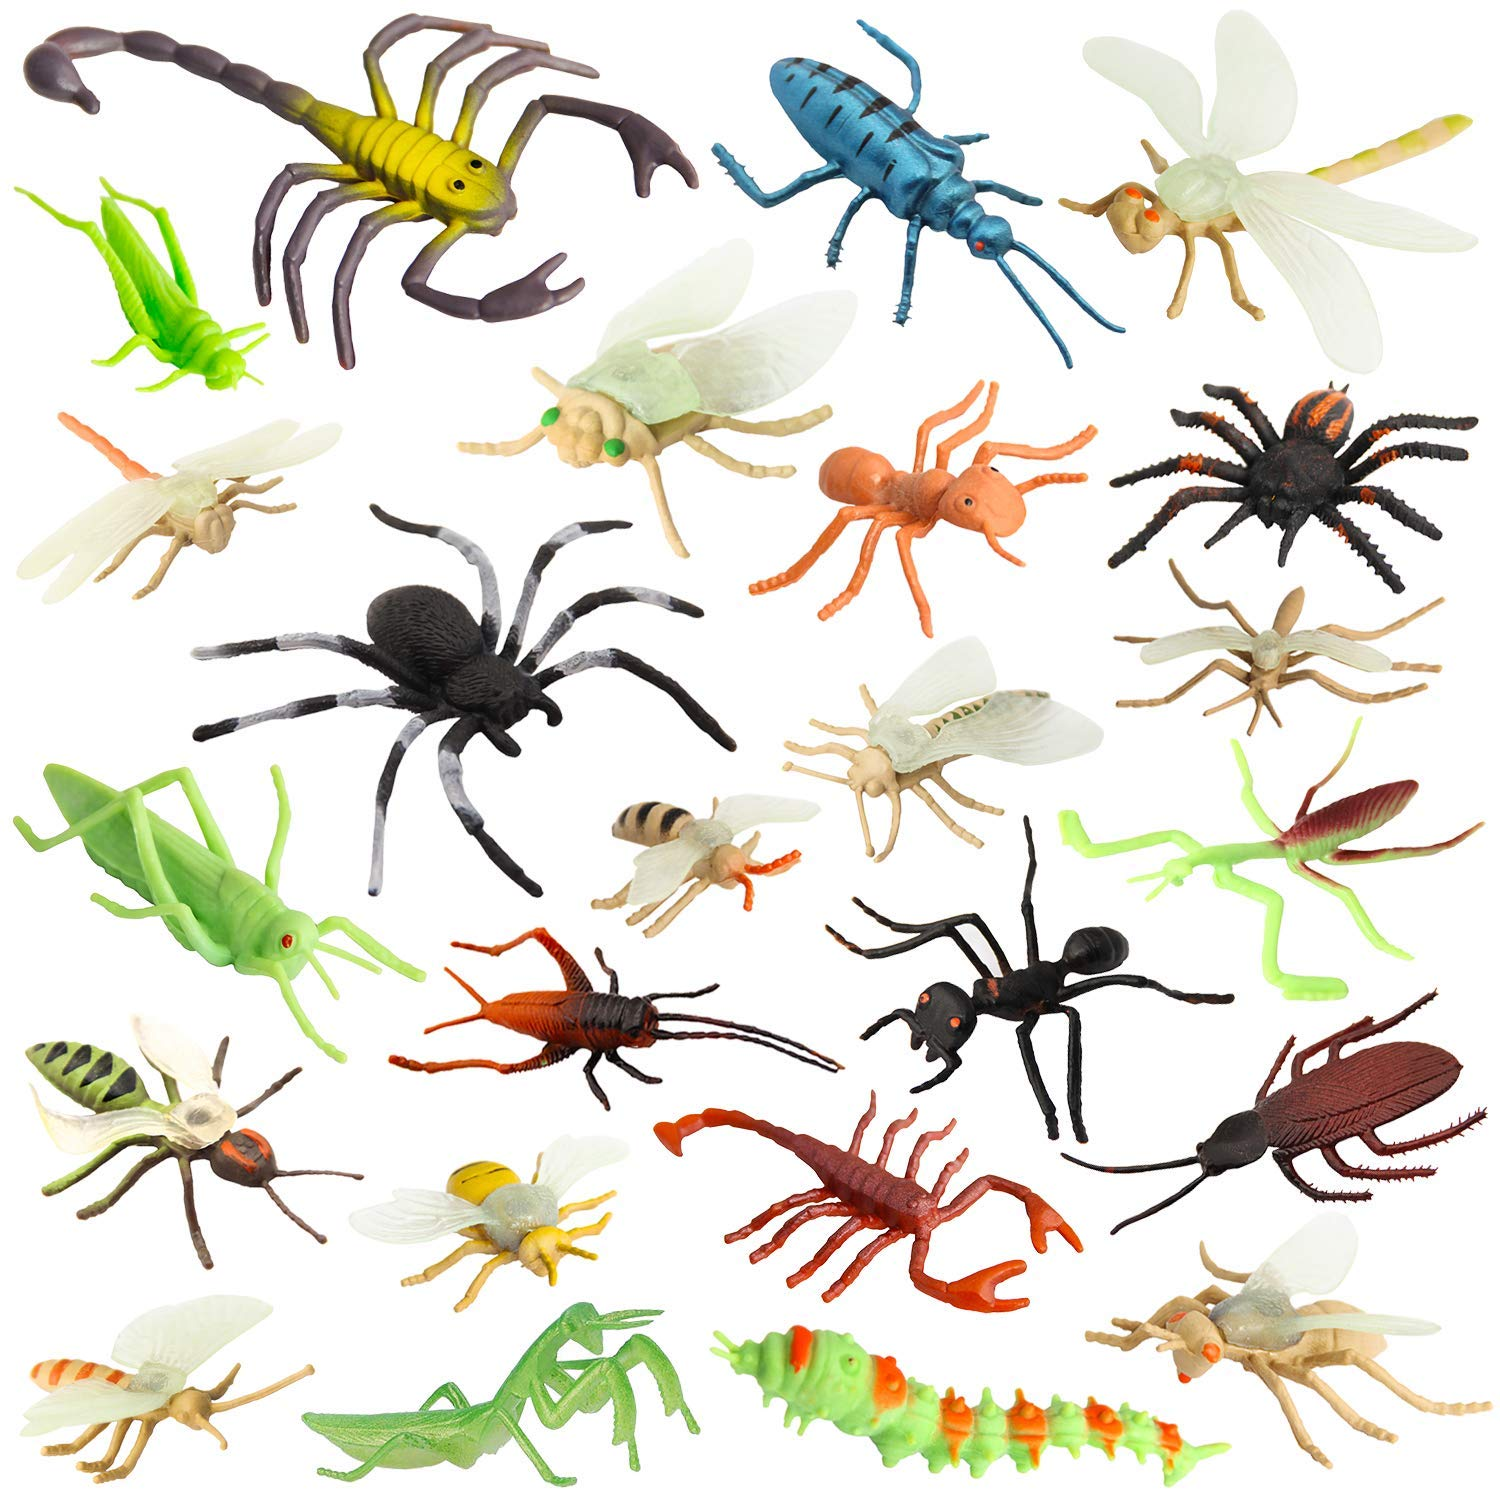 Insect Bug Toy Figures for Kids Boys, 2.